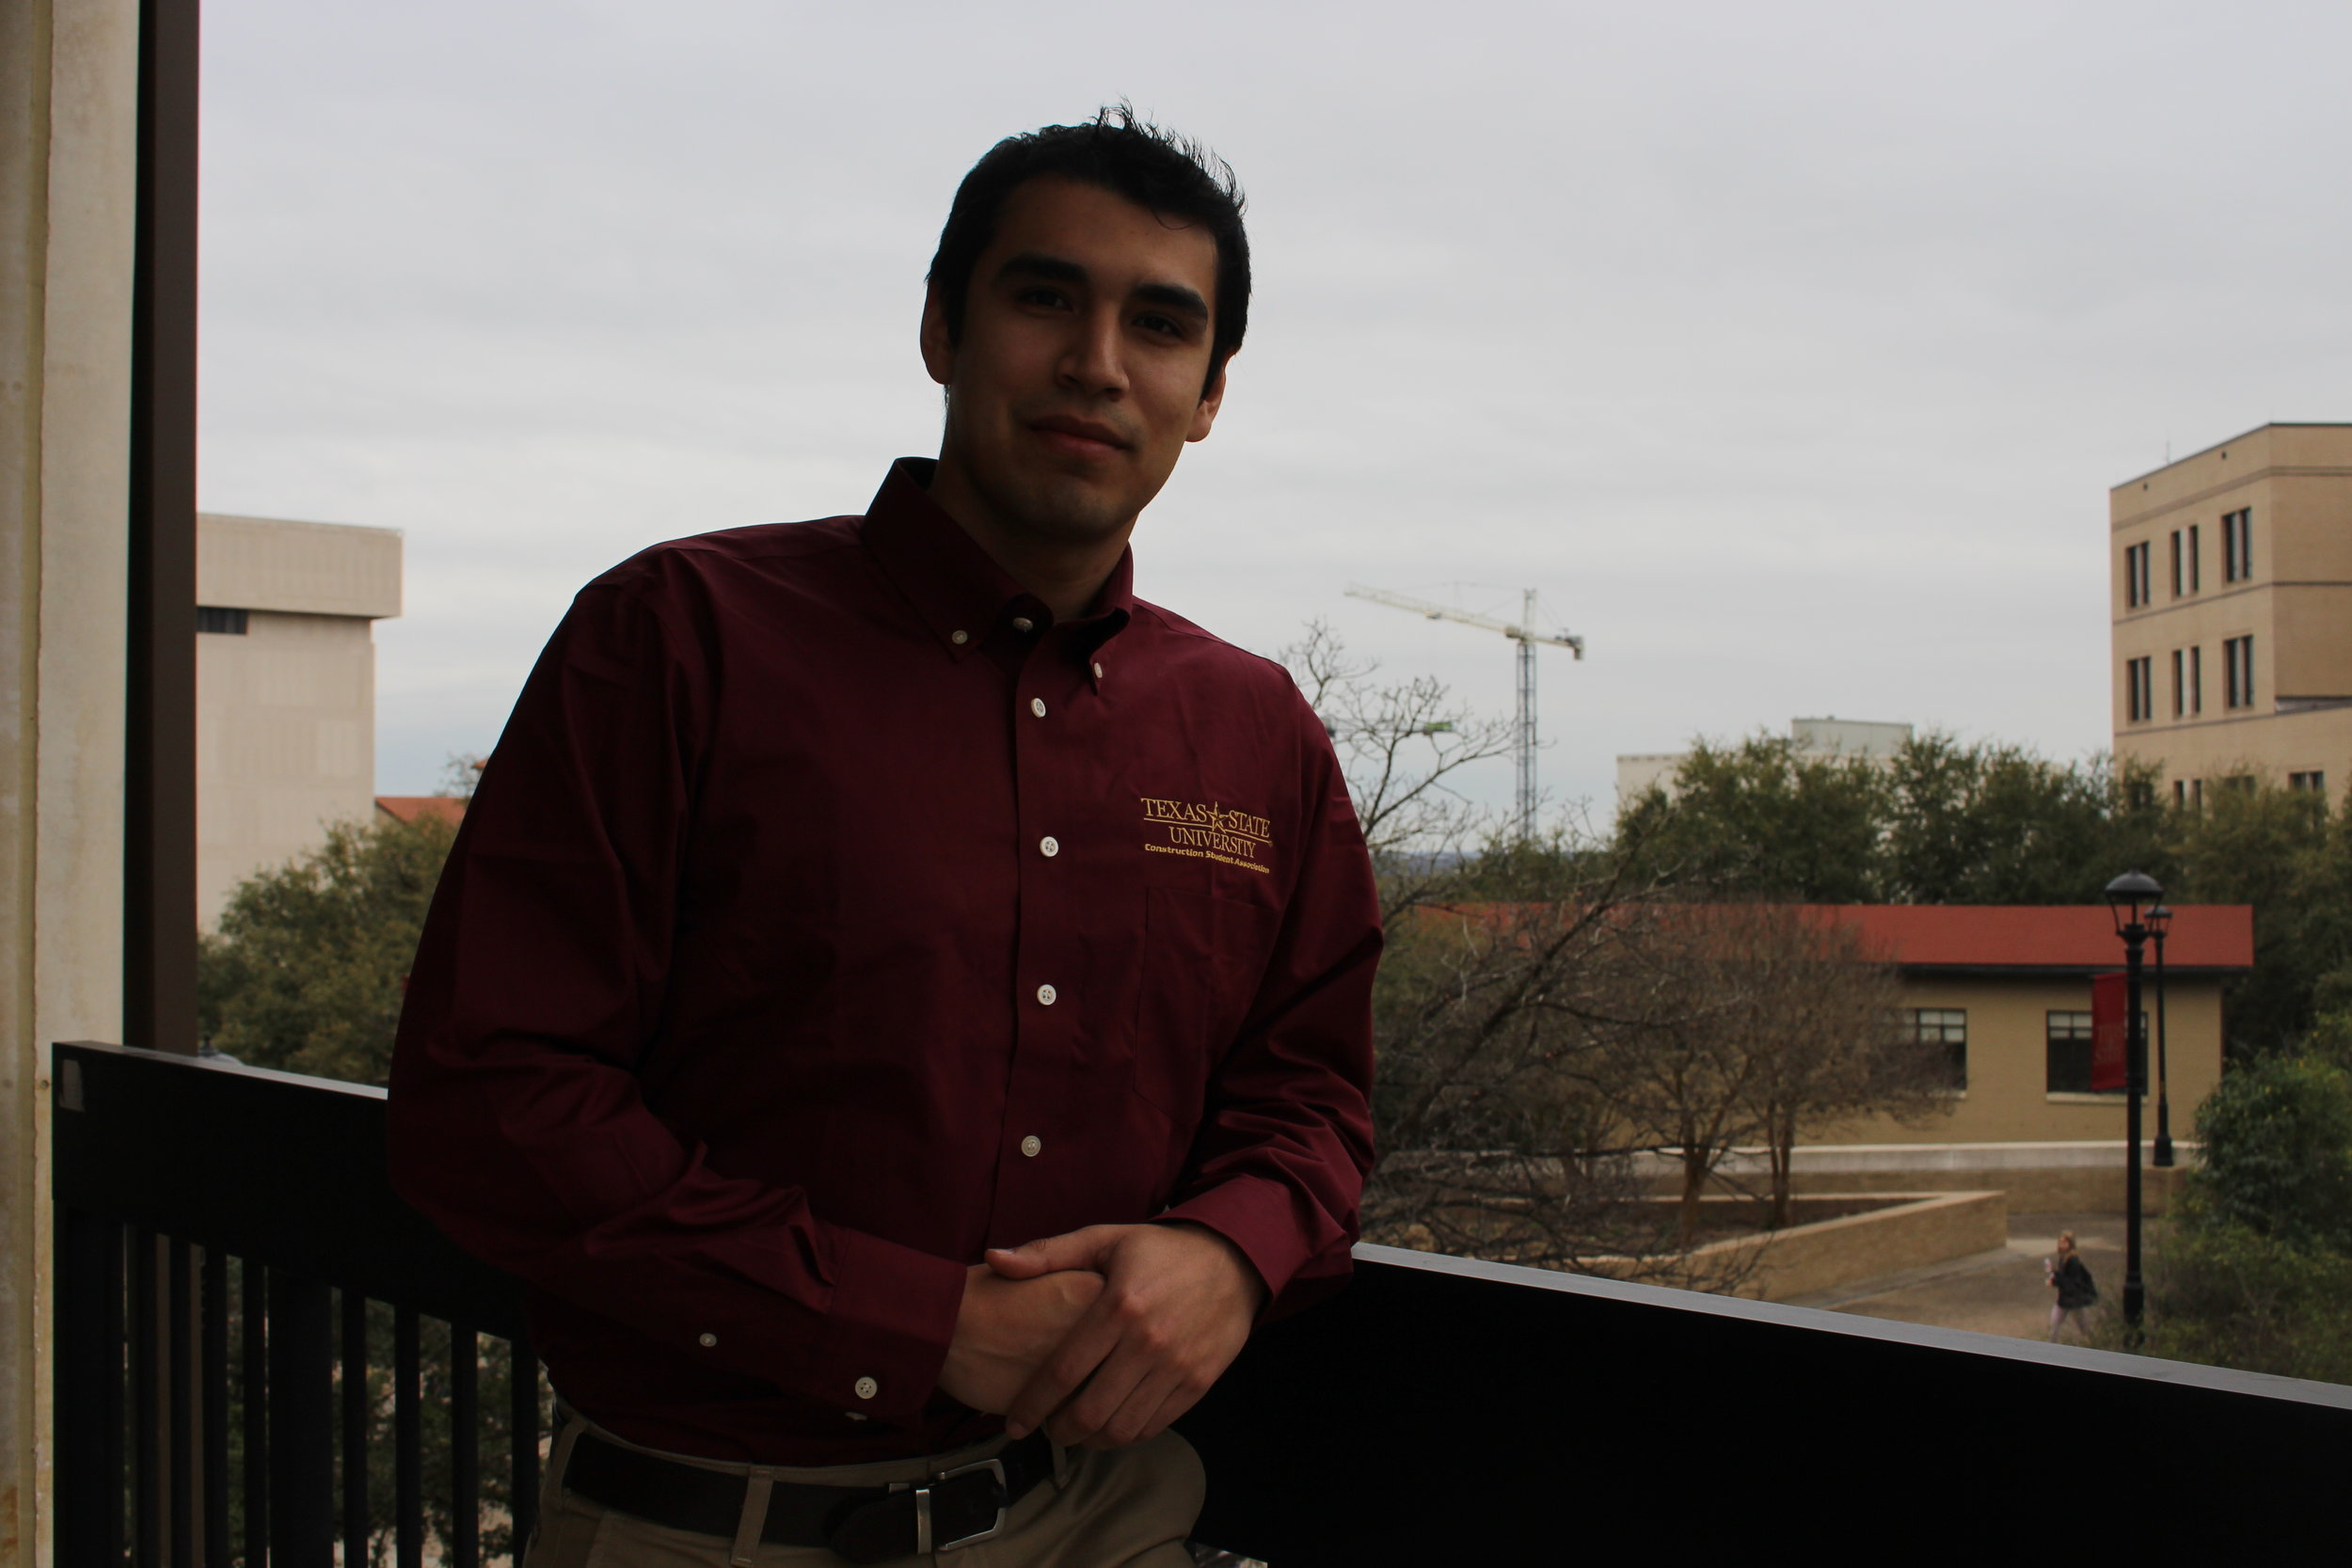 Treasurer -Darrin Tinajero - Hometown: San Antonio, TexasGraduation: Fall 2020Field of Interest: CommercialPast Experience: CenterPoint Energy, ASC and ABC CompetitionsTasks: Responsible for managing CSA budgets and expenses. Any purchases made must get the Treasurer's approval first.Contact: d_t276@txstate.edu